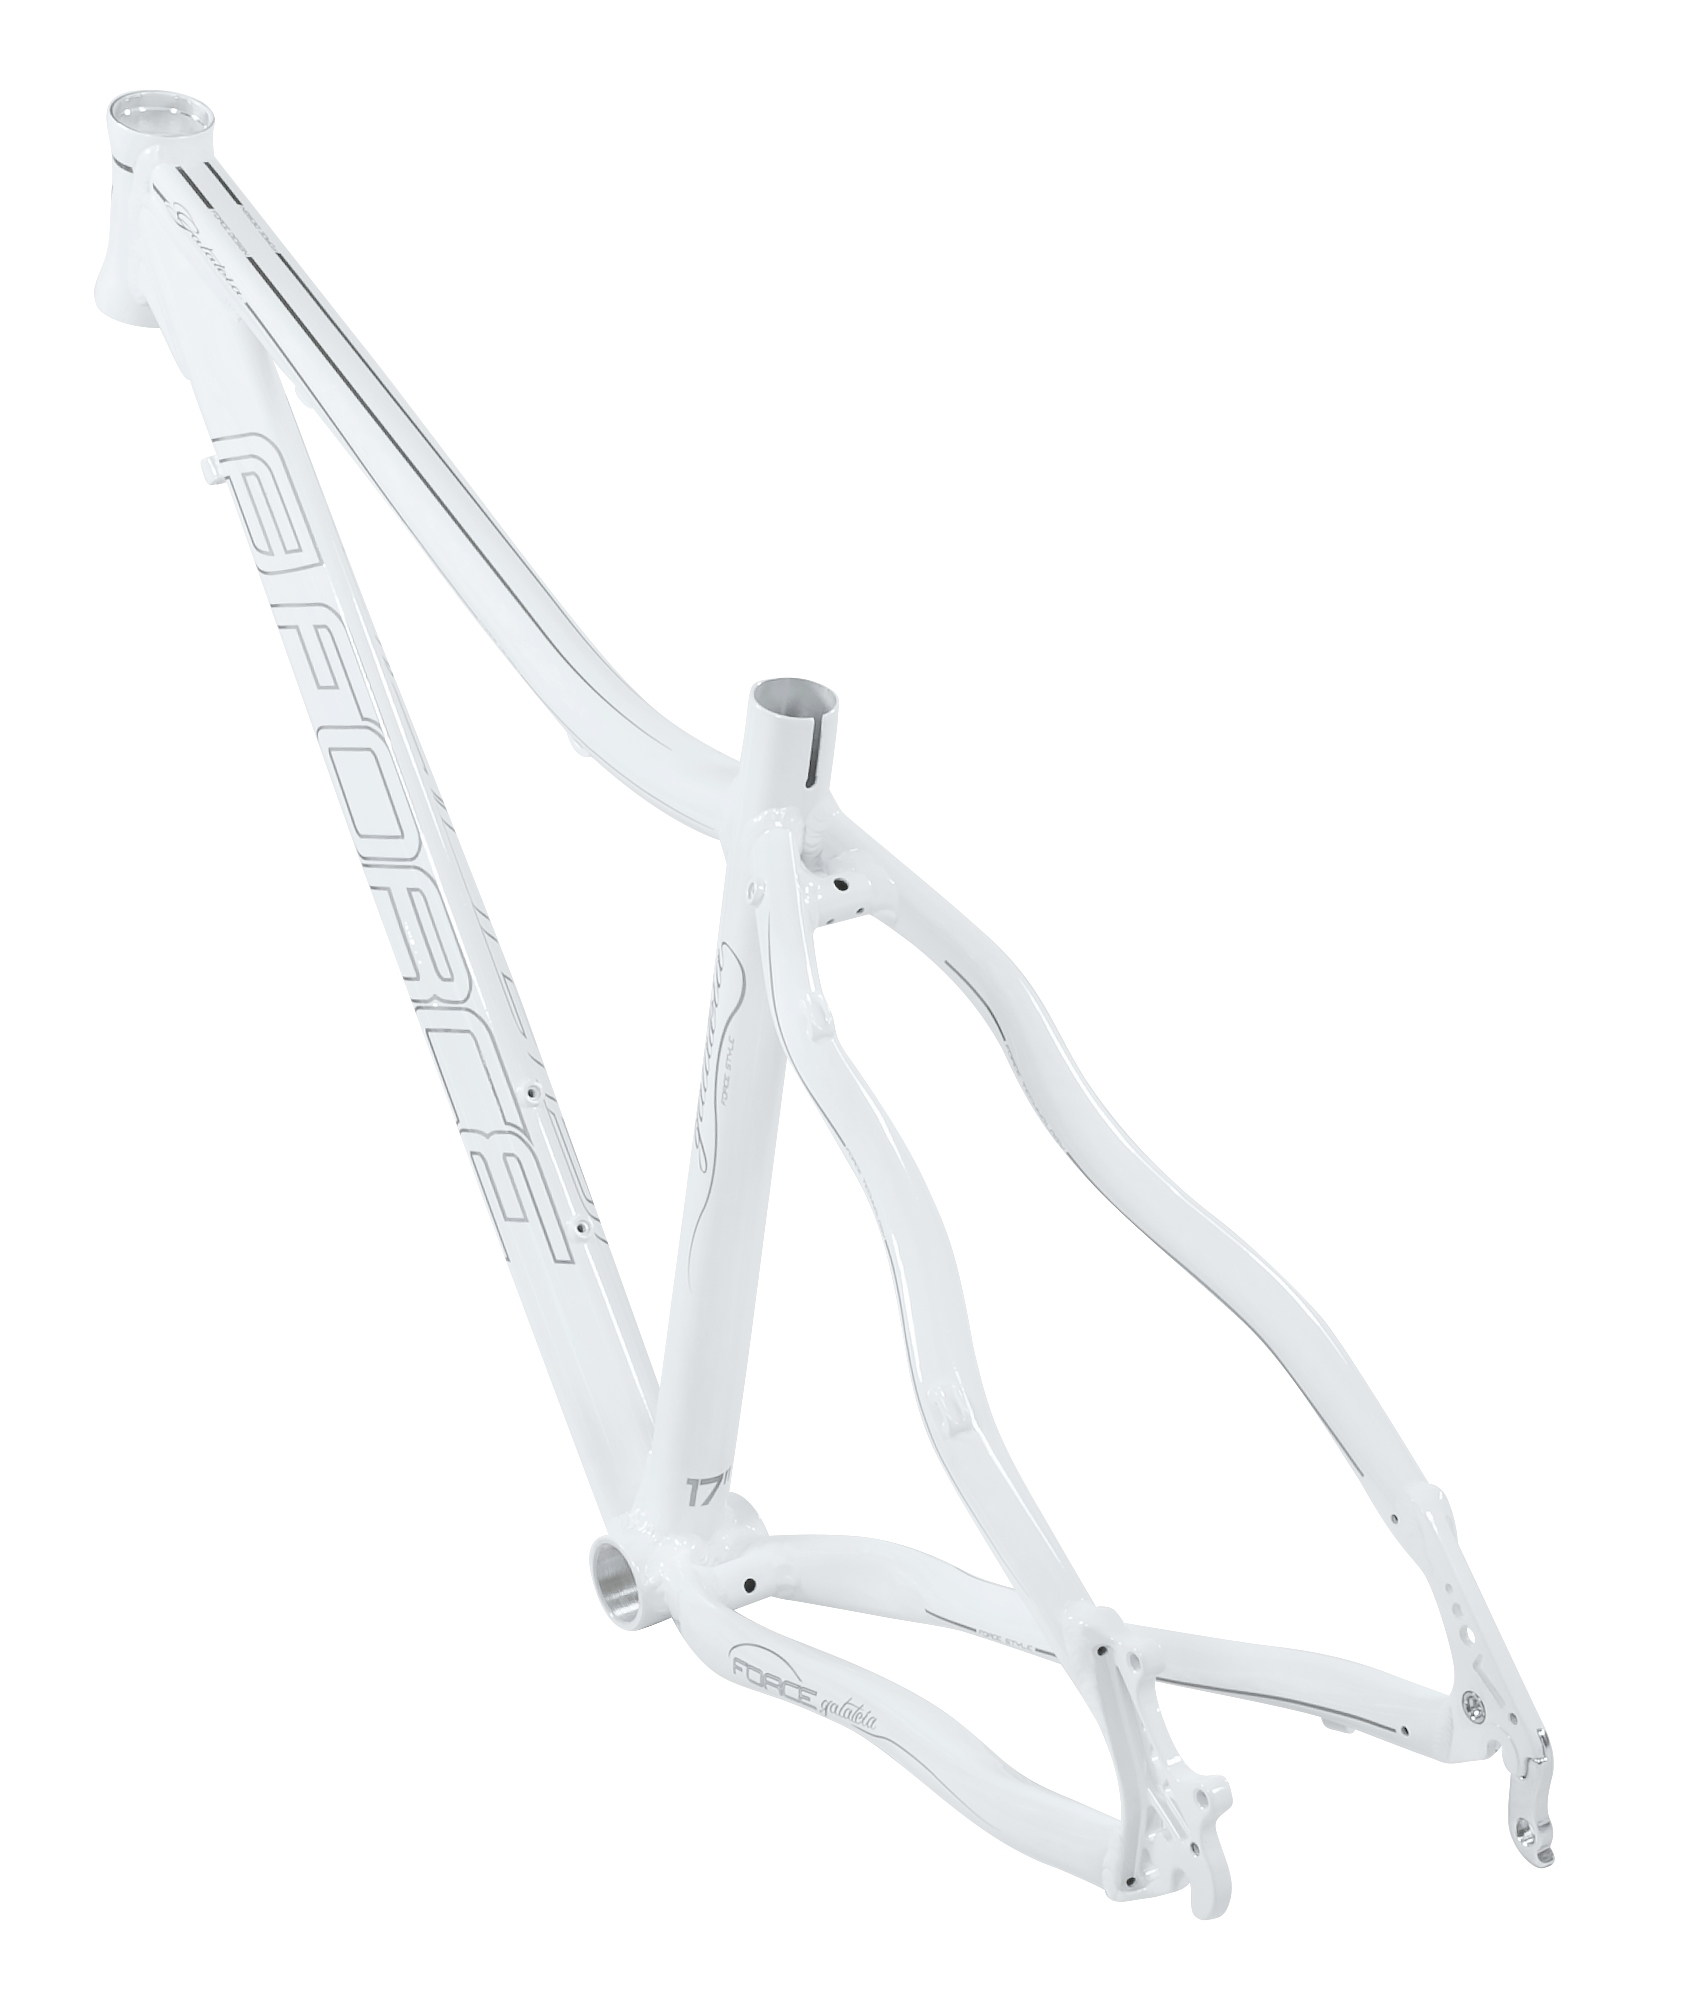 "rám FORCE GALATEIA MTB 29"" lady bílý M/ 17''"